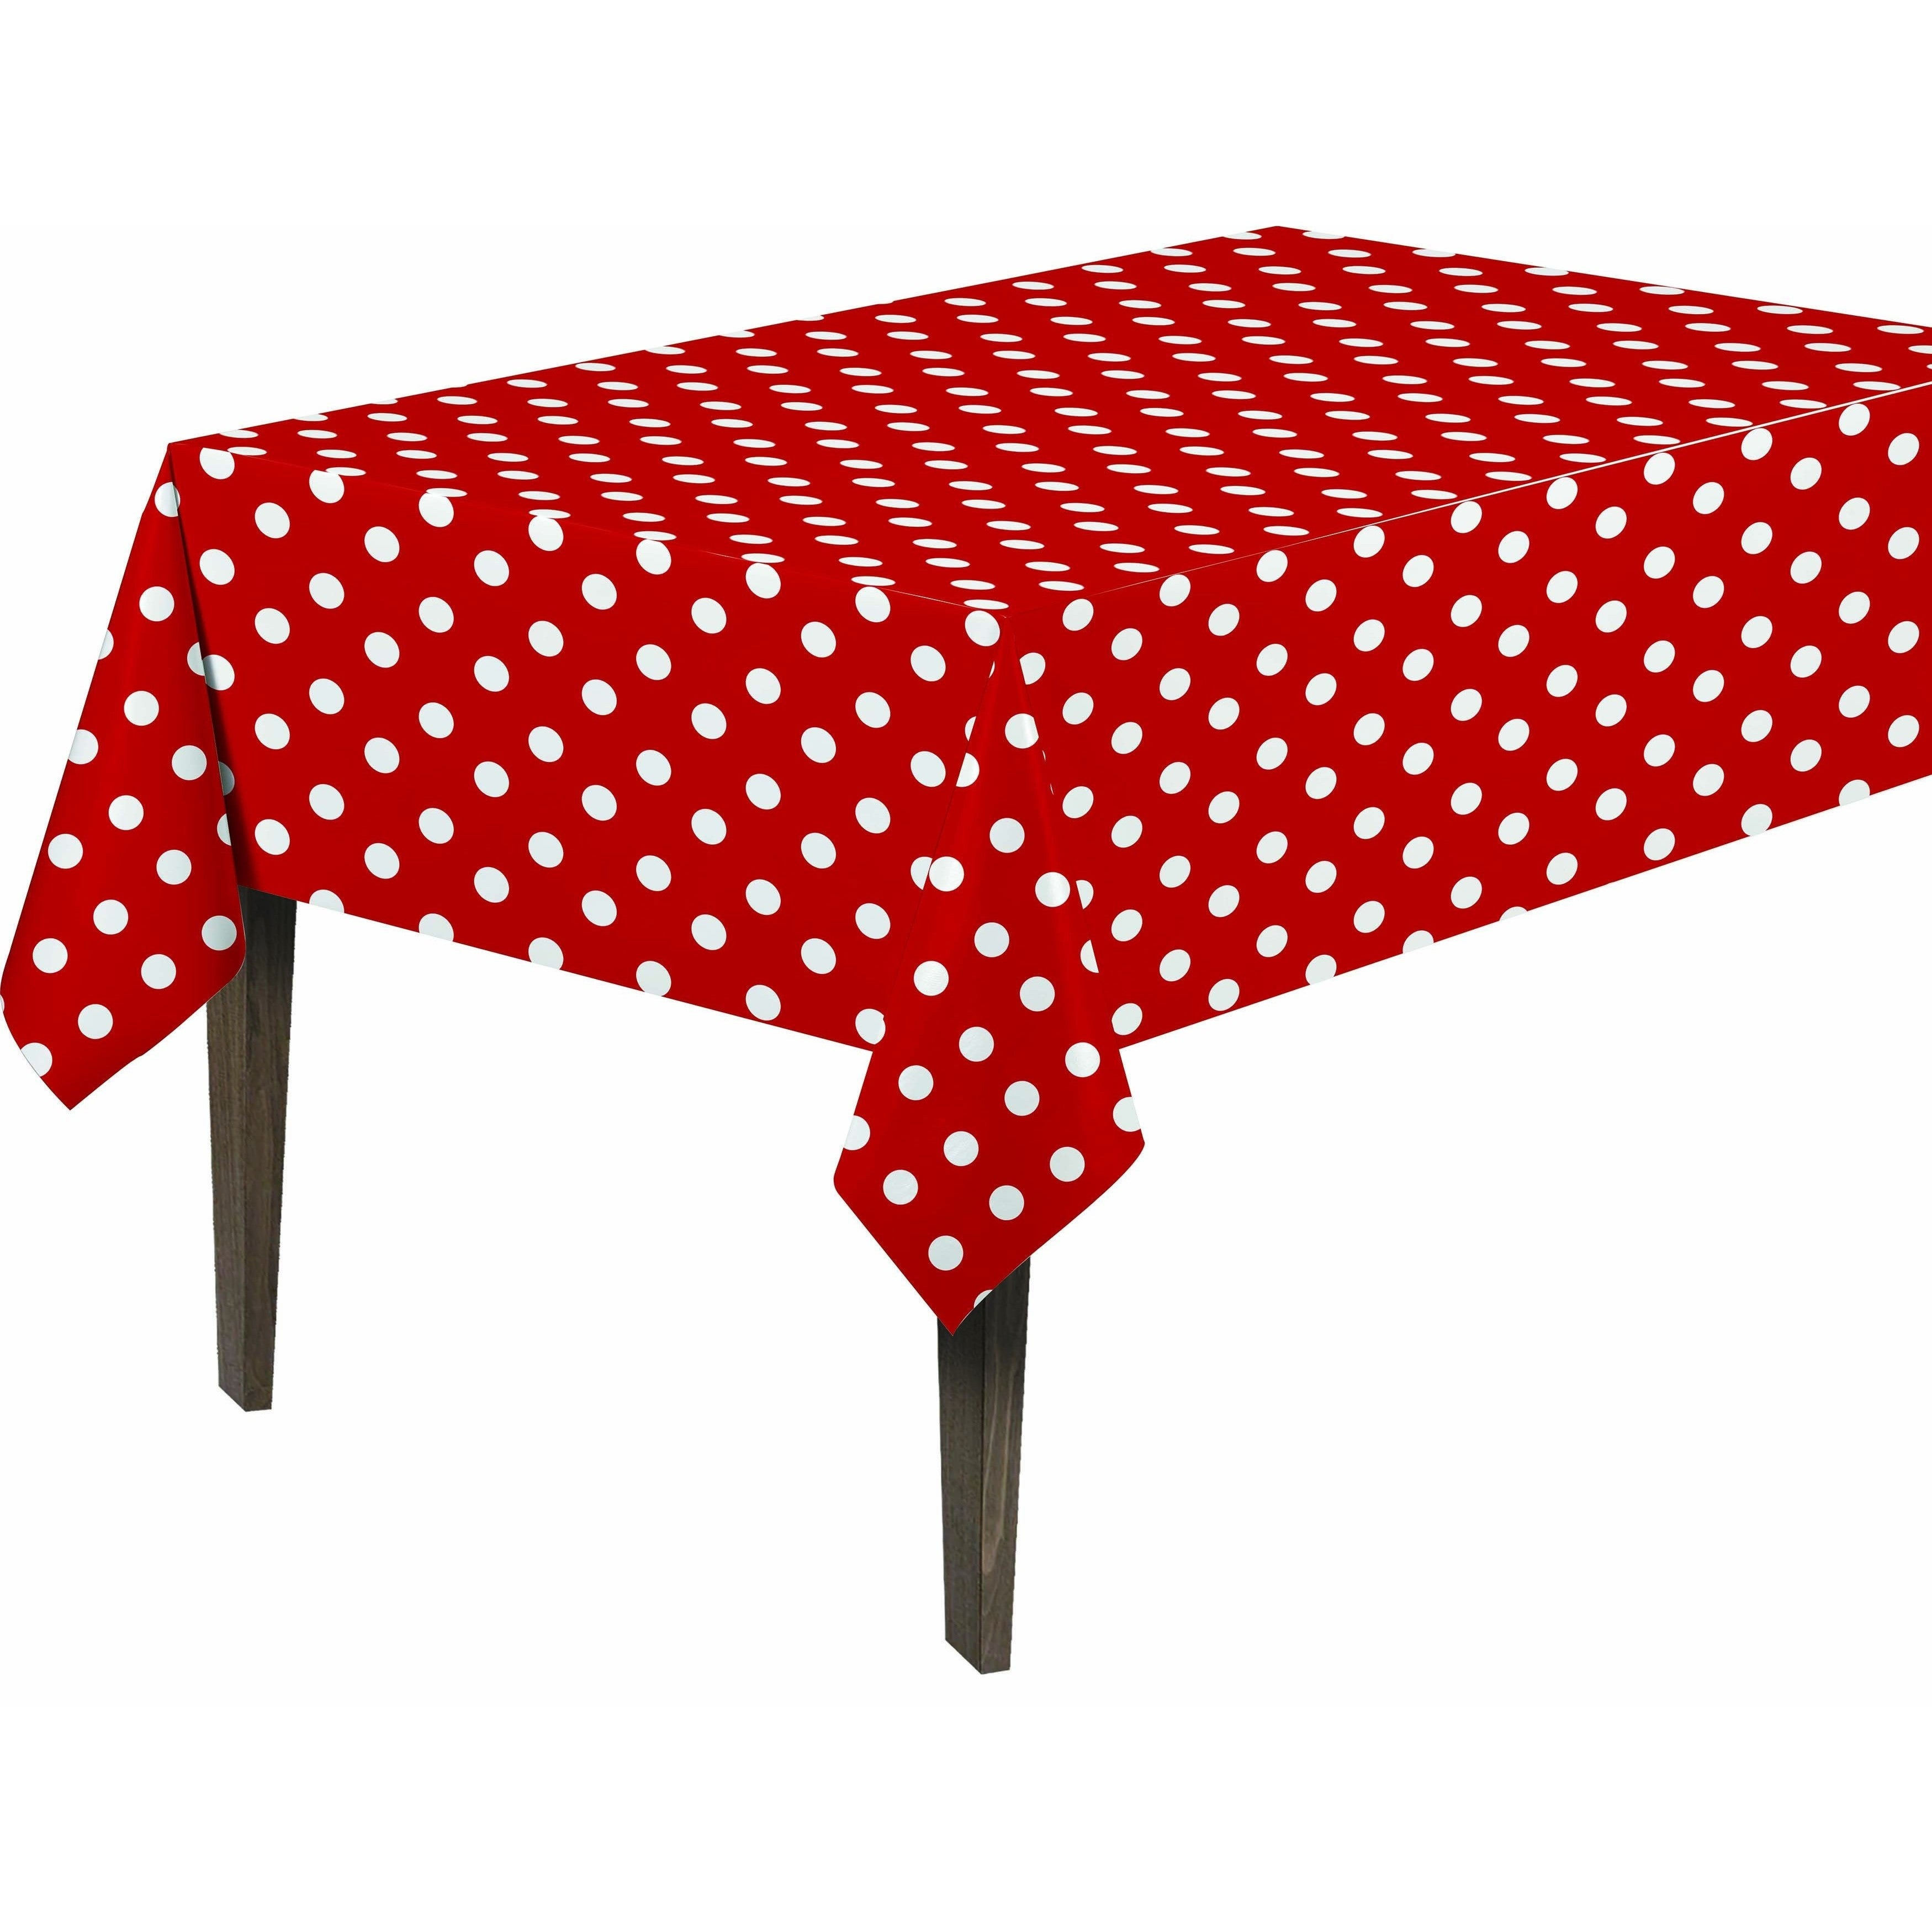 Berrnour Home Red, White Polyester 55 Inch X 86 Inch Polka Dot Design